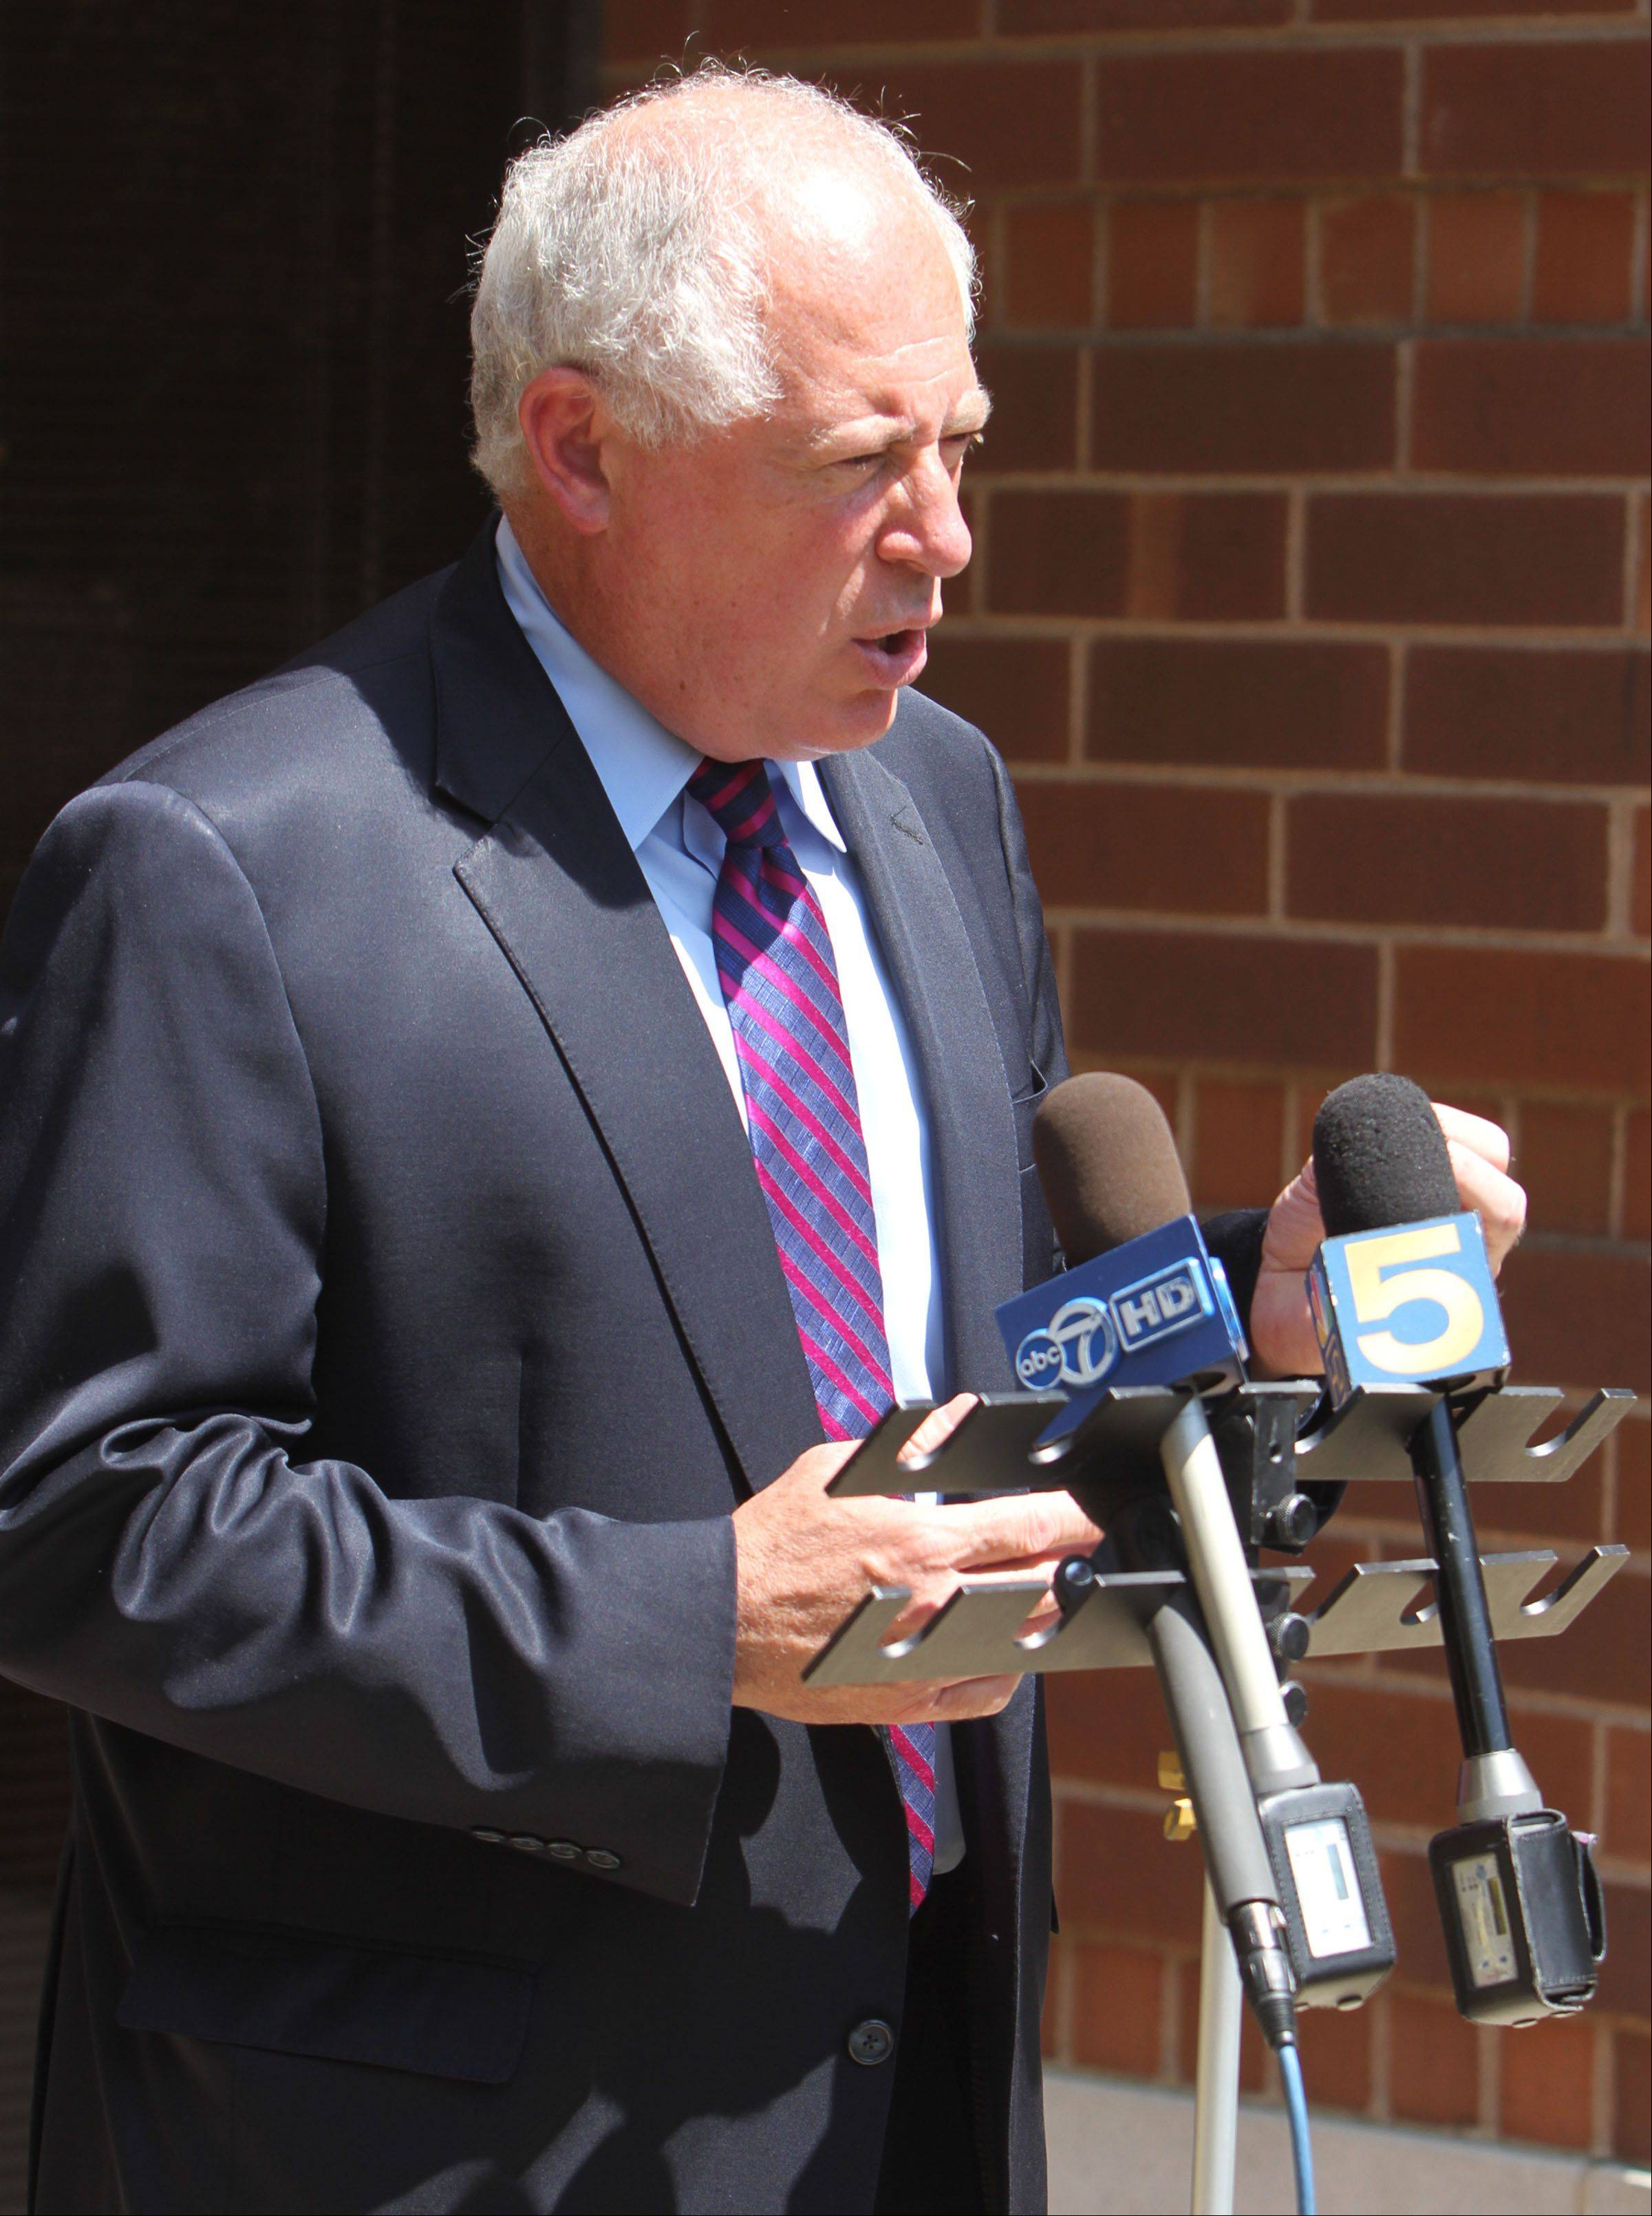 Gov. Pat Quinn speaks to reporters Thursday about the proposed gambling expansion legislation that would put 1,200 slot machines at Arlington Park racetrack.